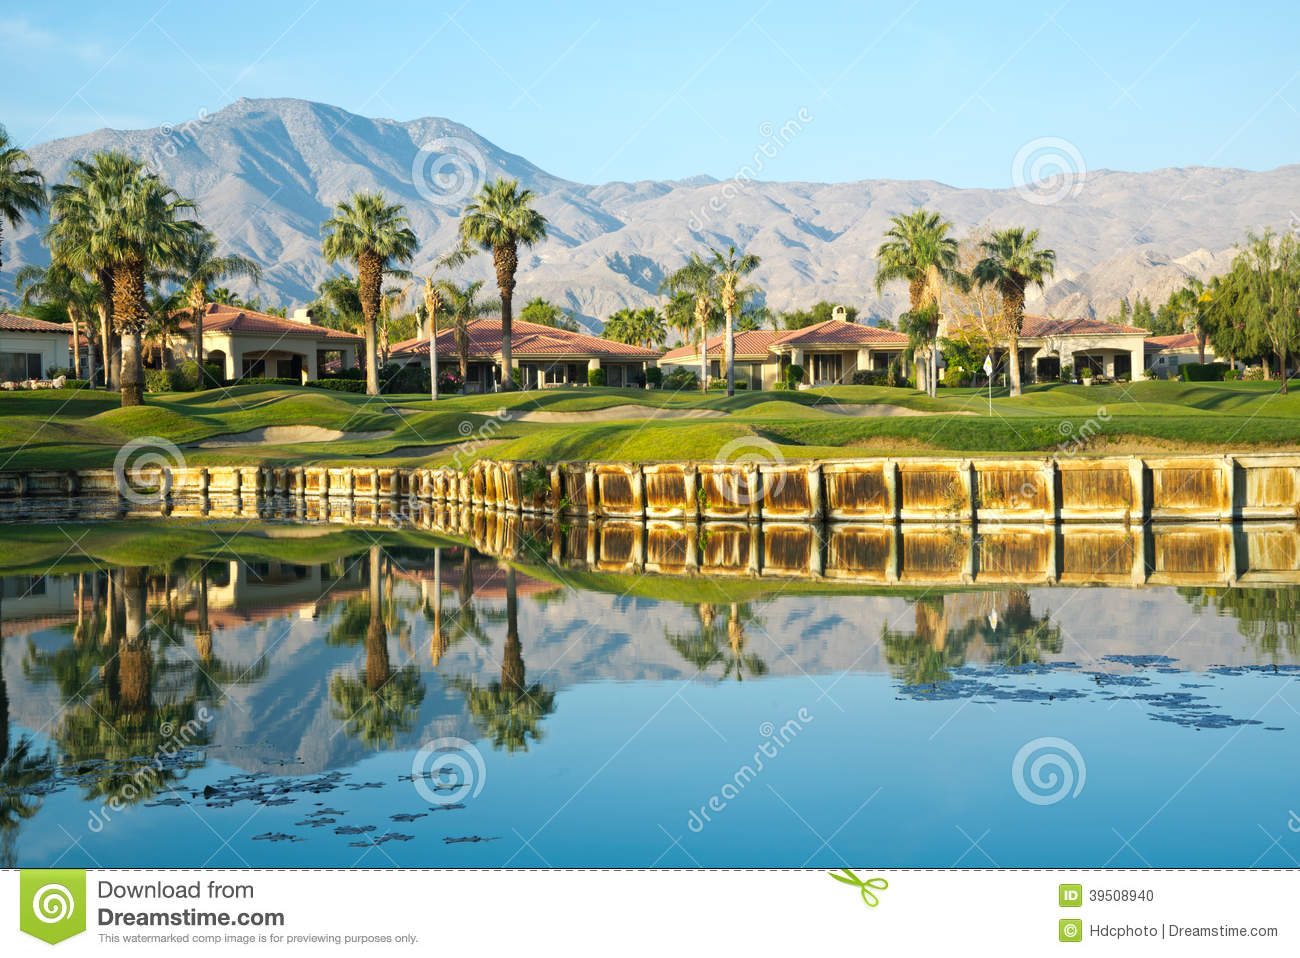 Reflection of Trees and Mountains at Golf Course